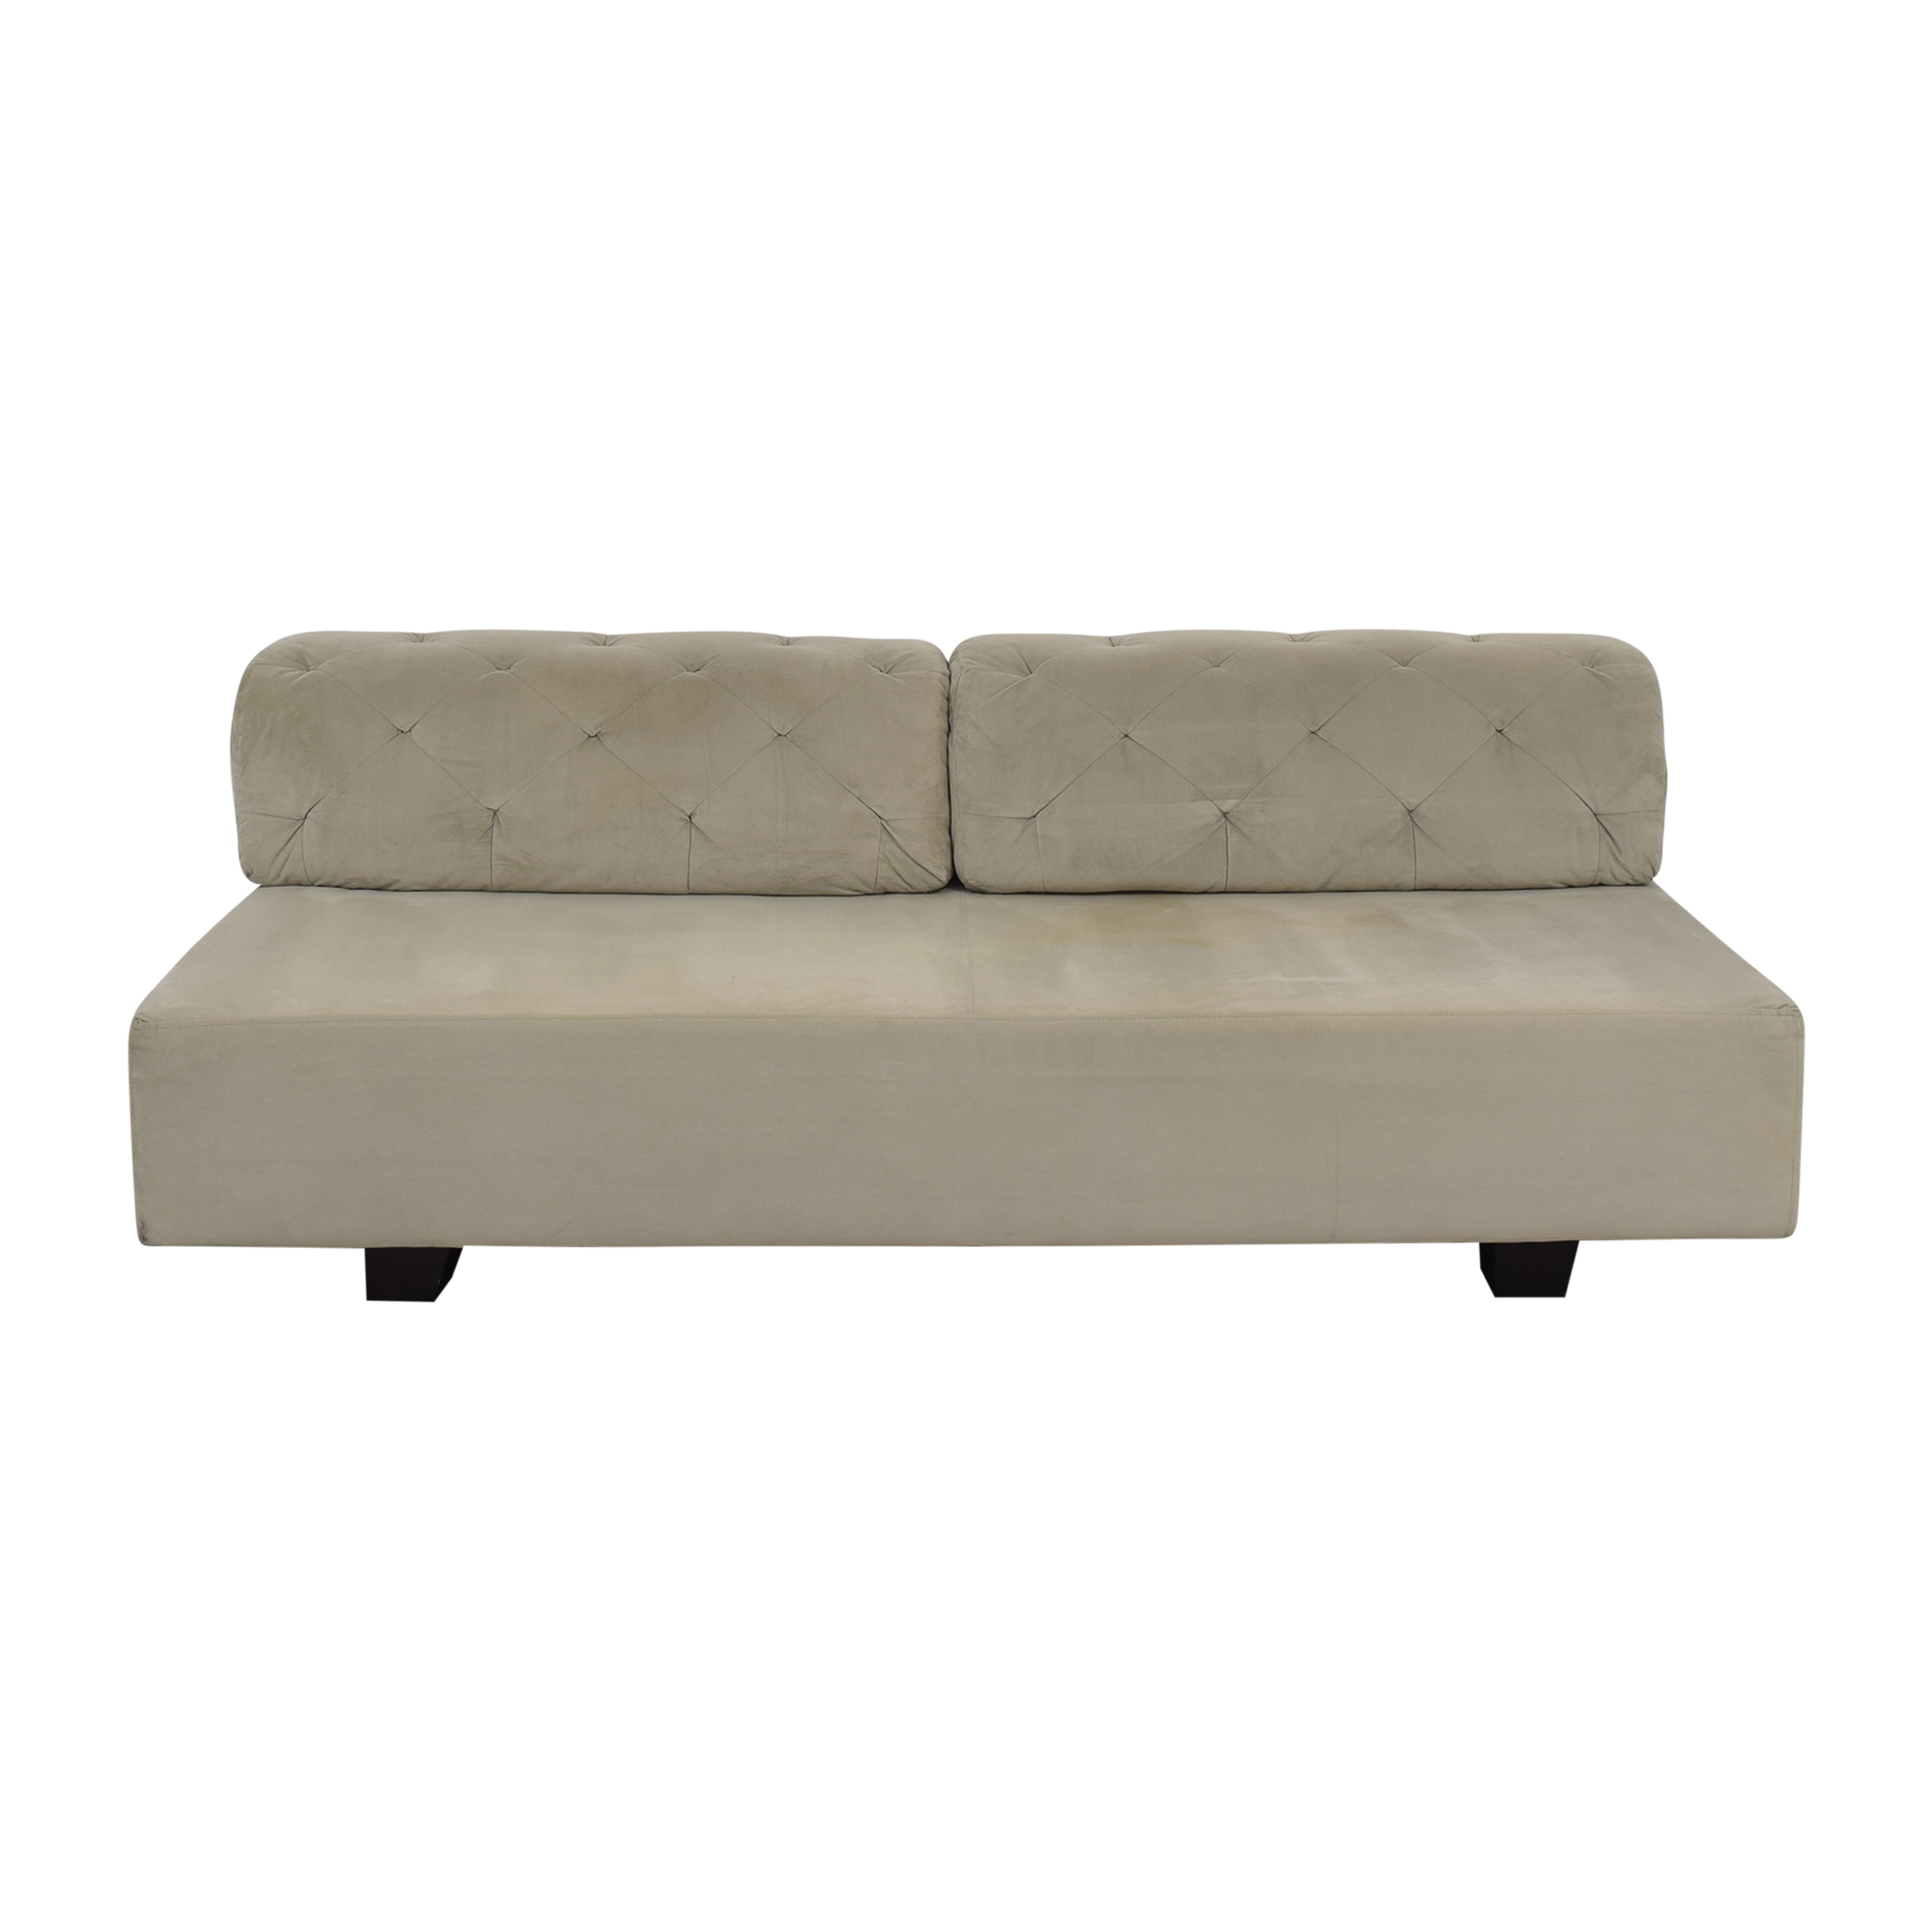 West Elm West Elm Tufted Tillary Sofa for sale